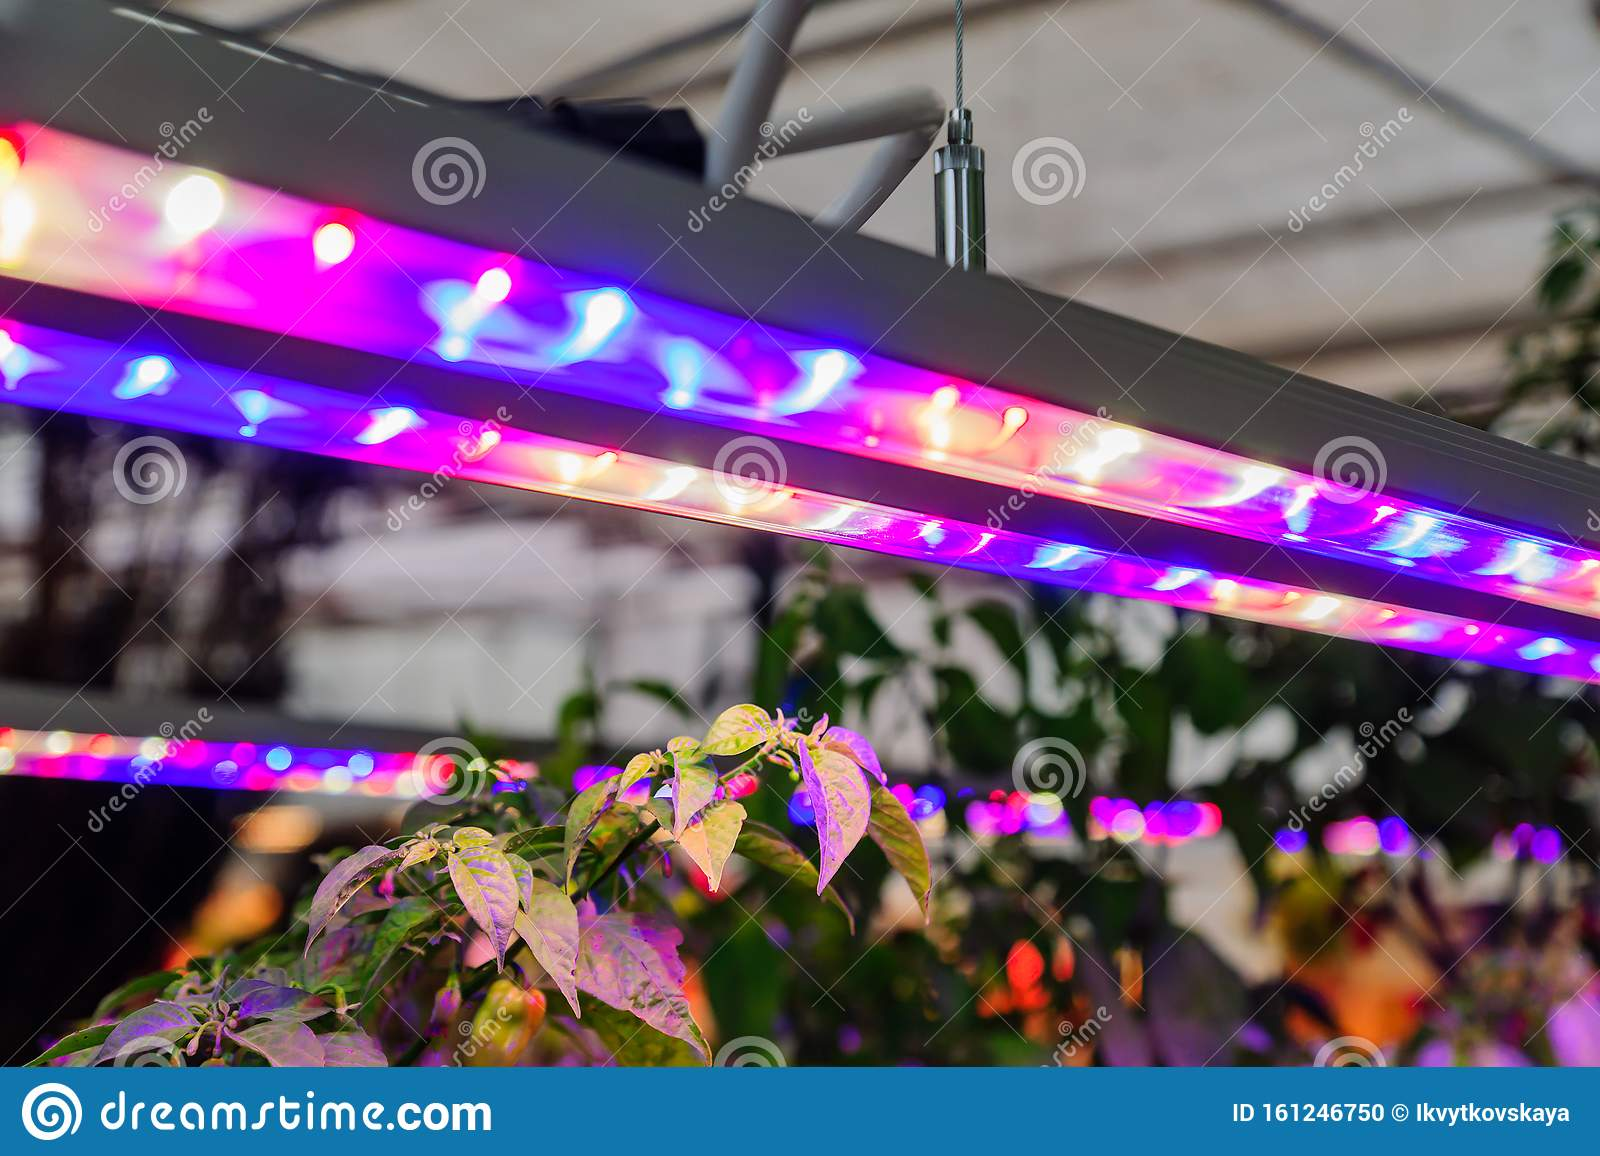 Growing Vegetables Under Led Grow Light Stock Photo Image Of